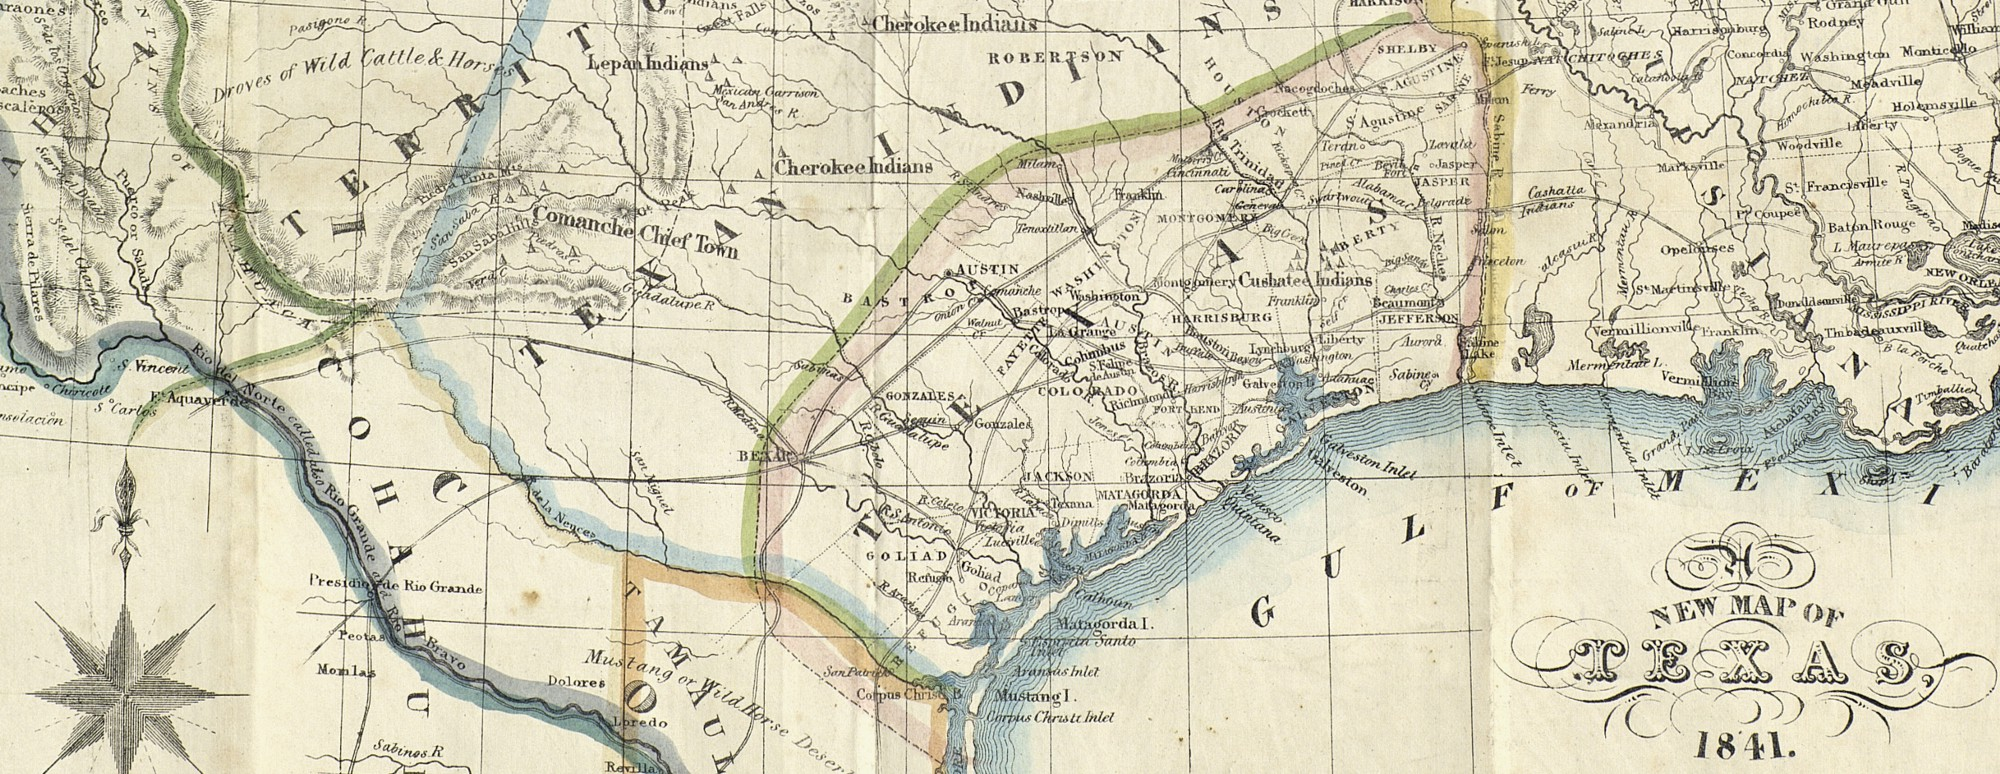 A new map of texas 1841 save texas history medium nicholas doran maillard a new map of texas new york day haghe 1841 map 93862 frank and carol holcomb map collection archives and records program gumiabroncs Gallery